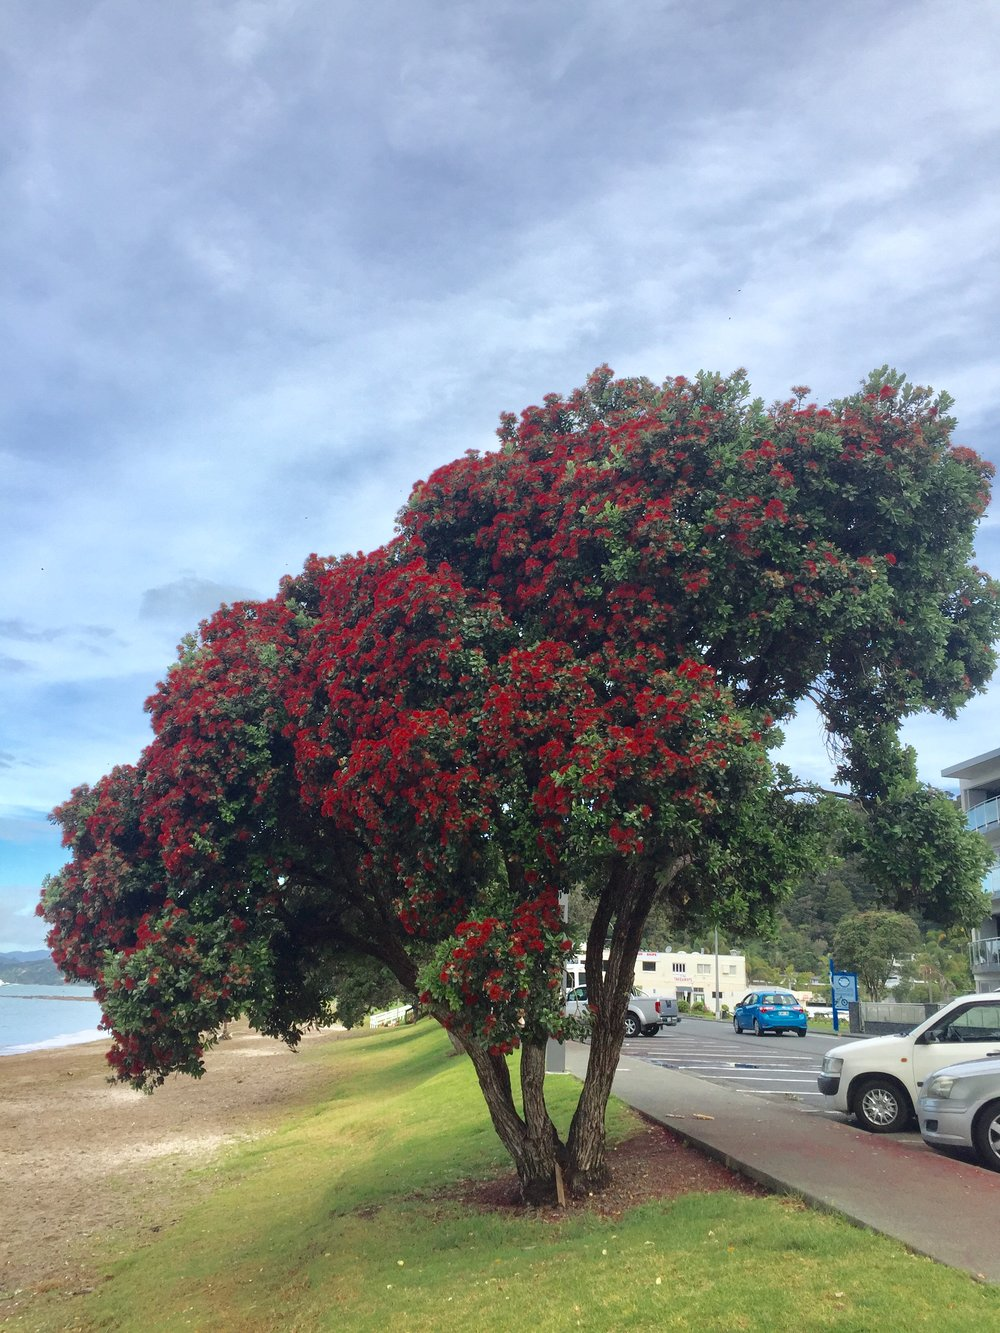 New Zealand Christmas tree in the Bay of Islands, New Zealand